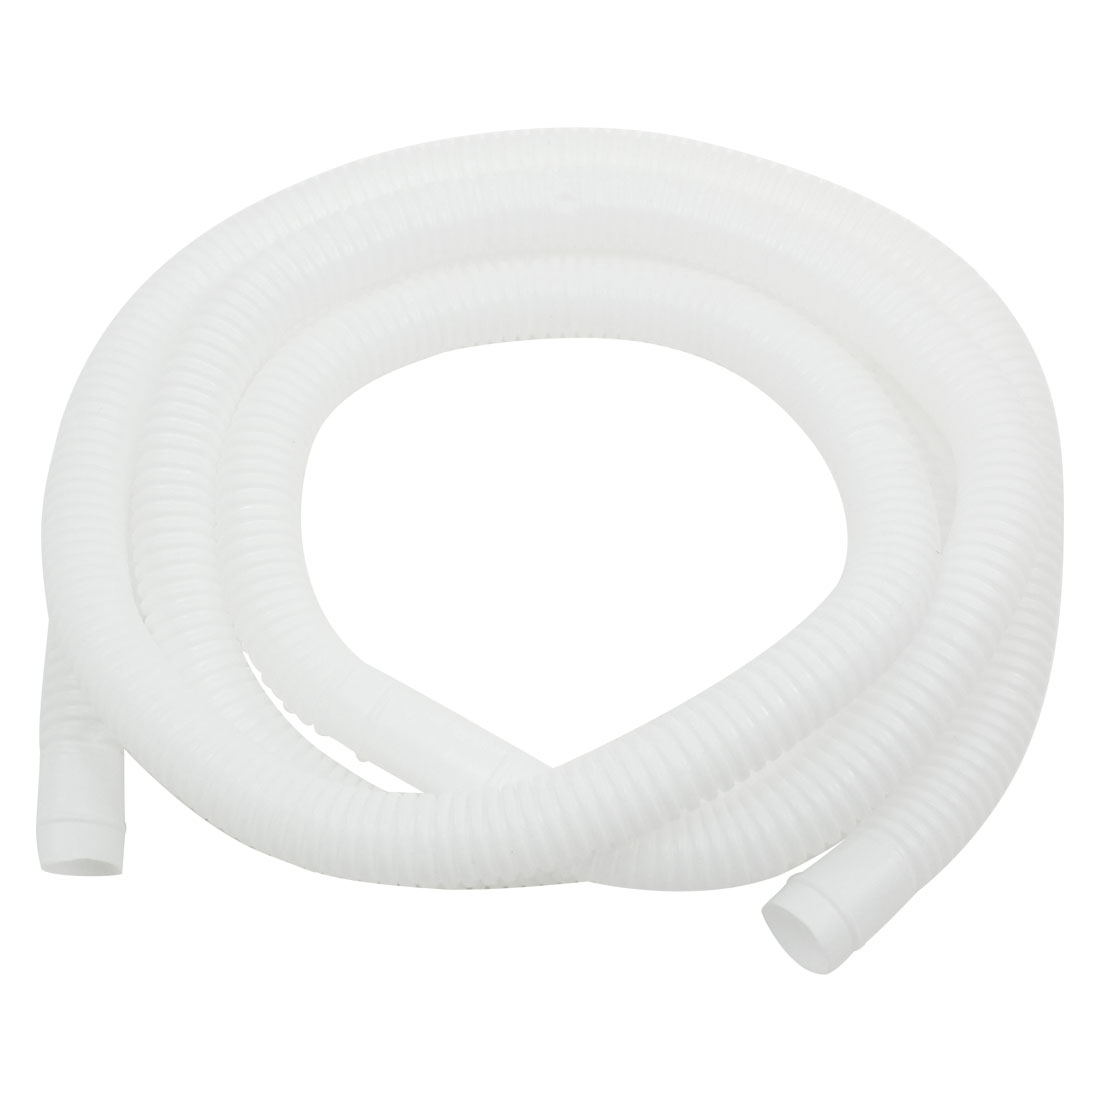 2Meter Long 16mm x 17mm White Plastic Drain Hose Pipe for Air Conditioner